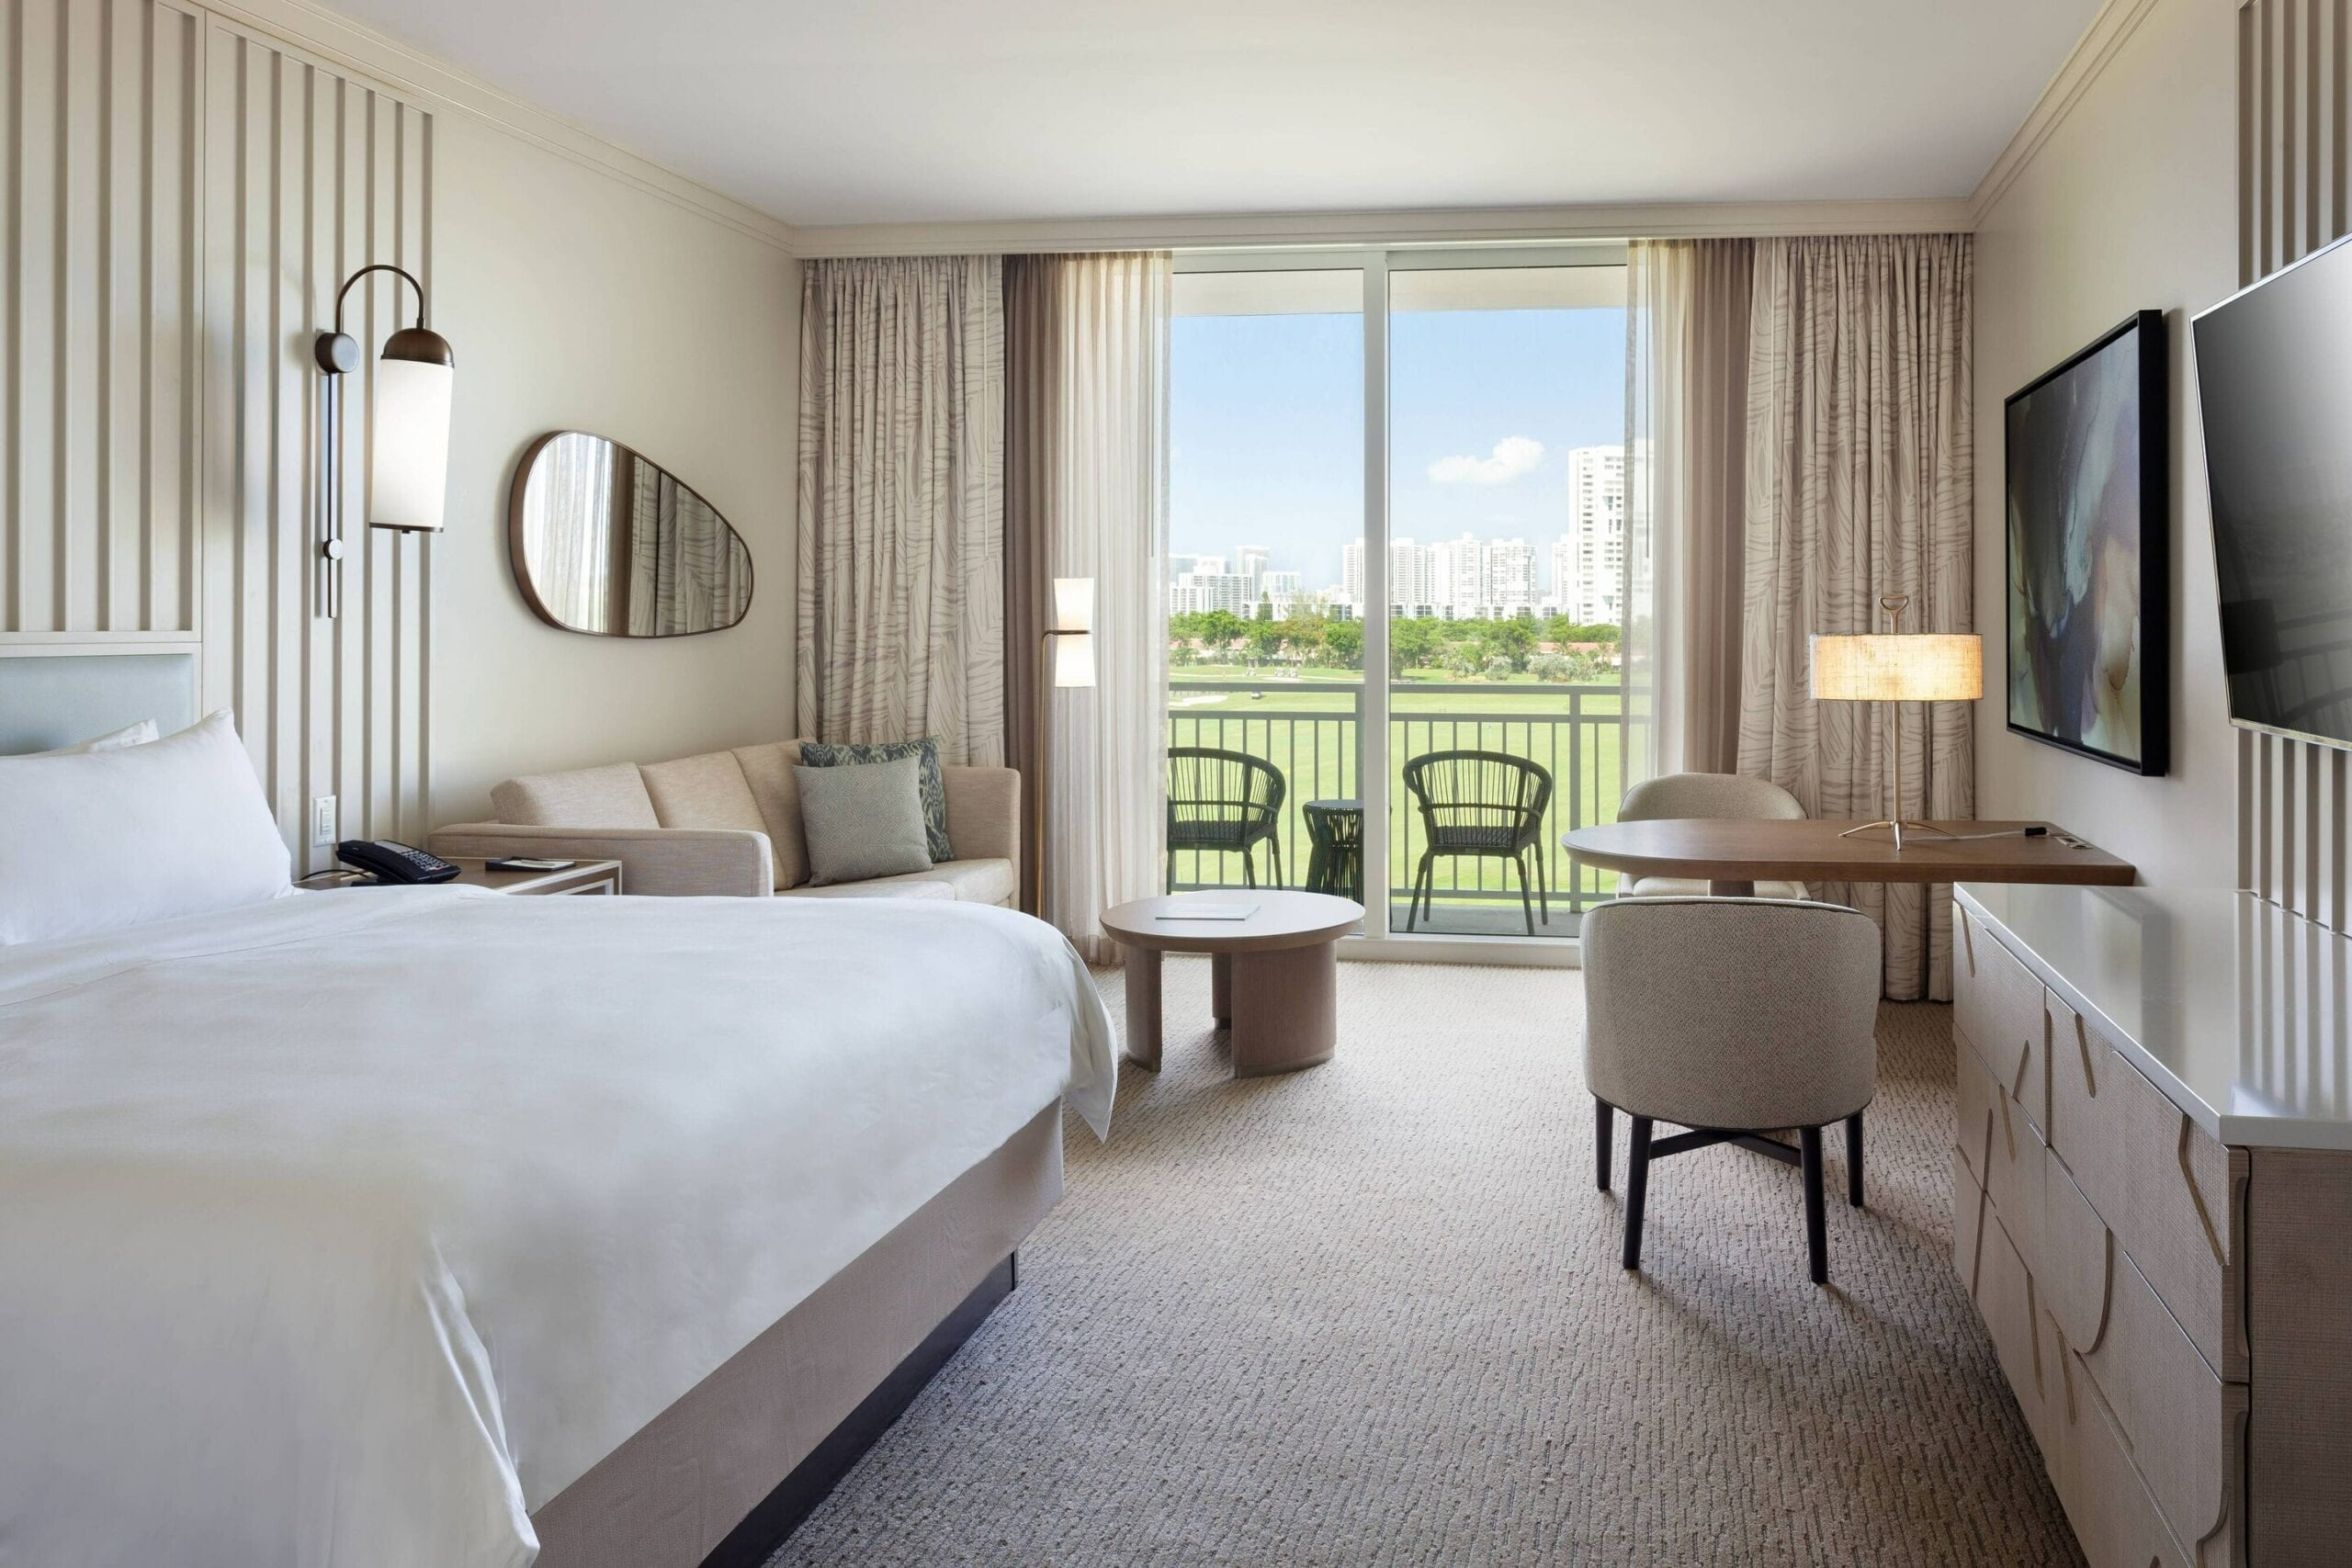 an image of a guest room at jw marriot turnberry resort & space